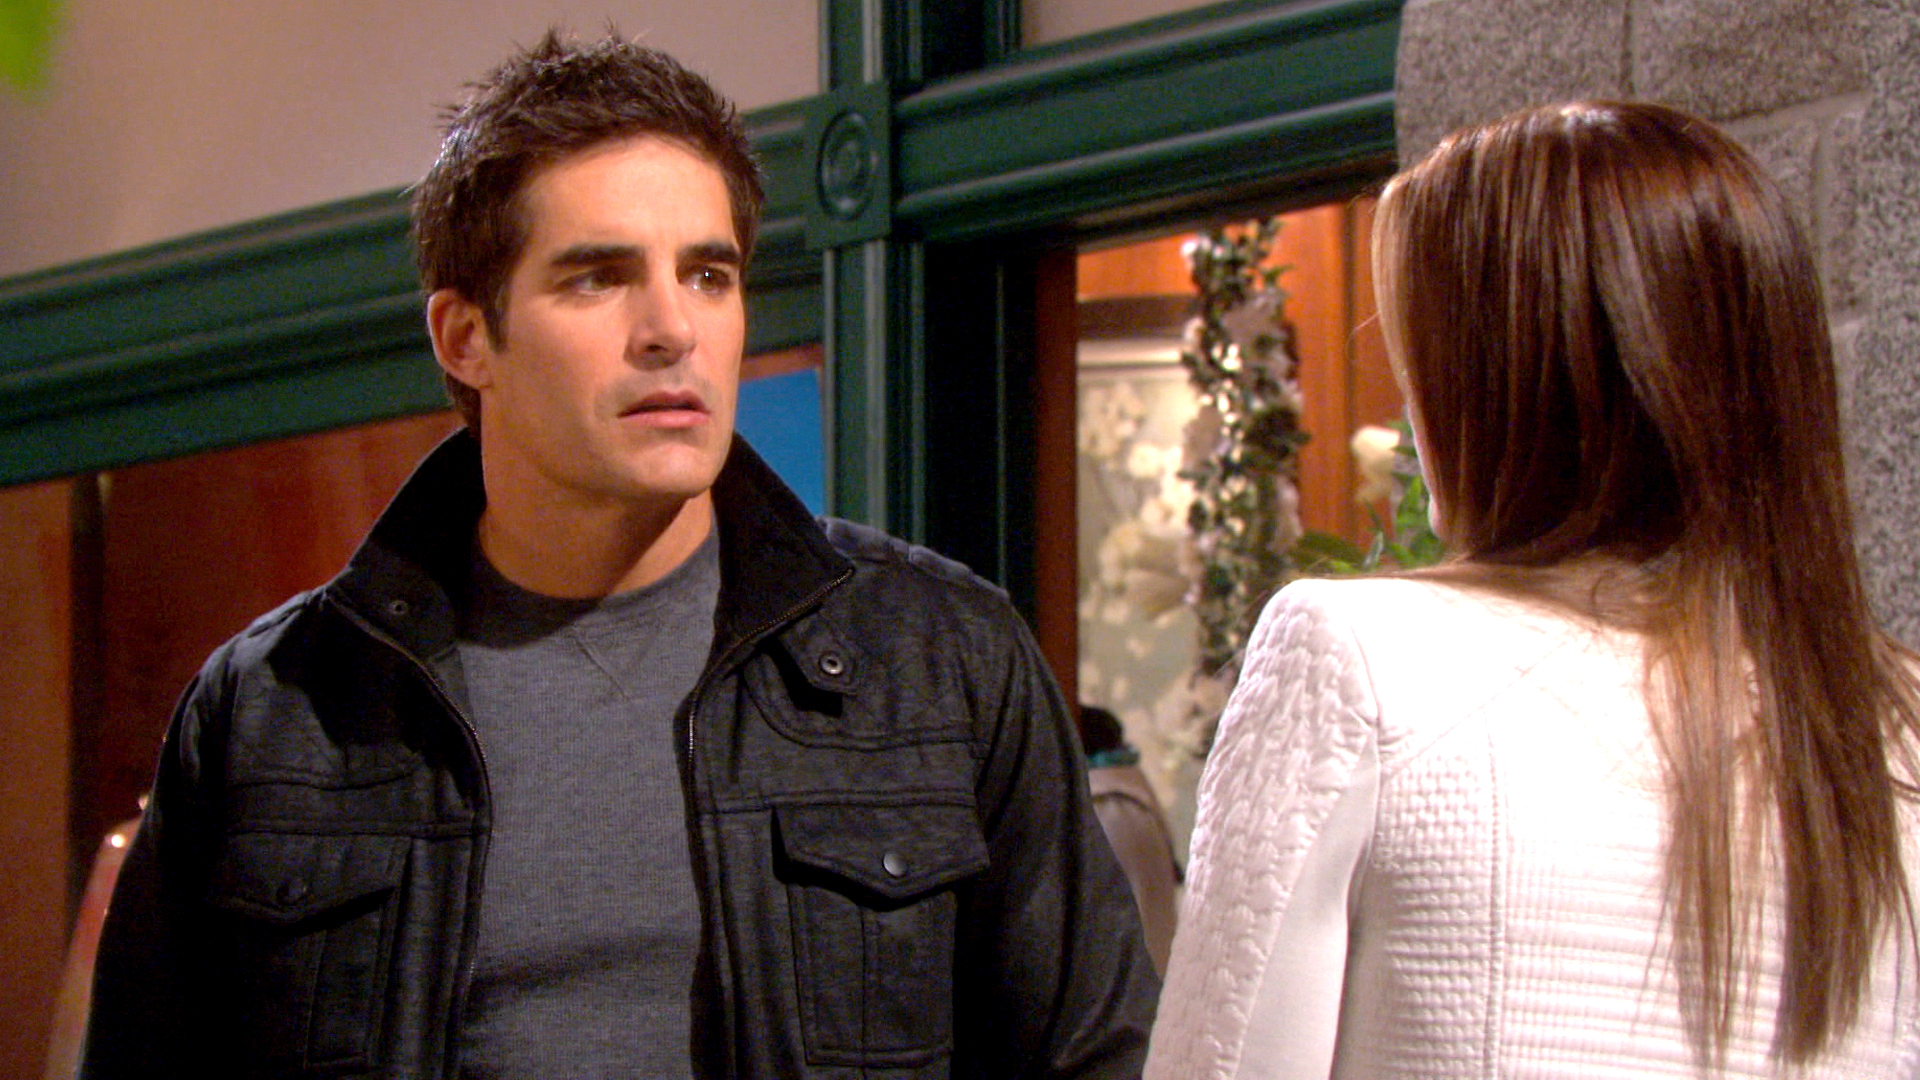 Rafe has a violent reaction to finding Jordan with Ben...